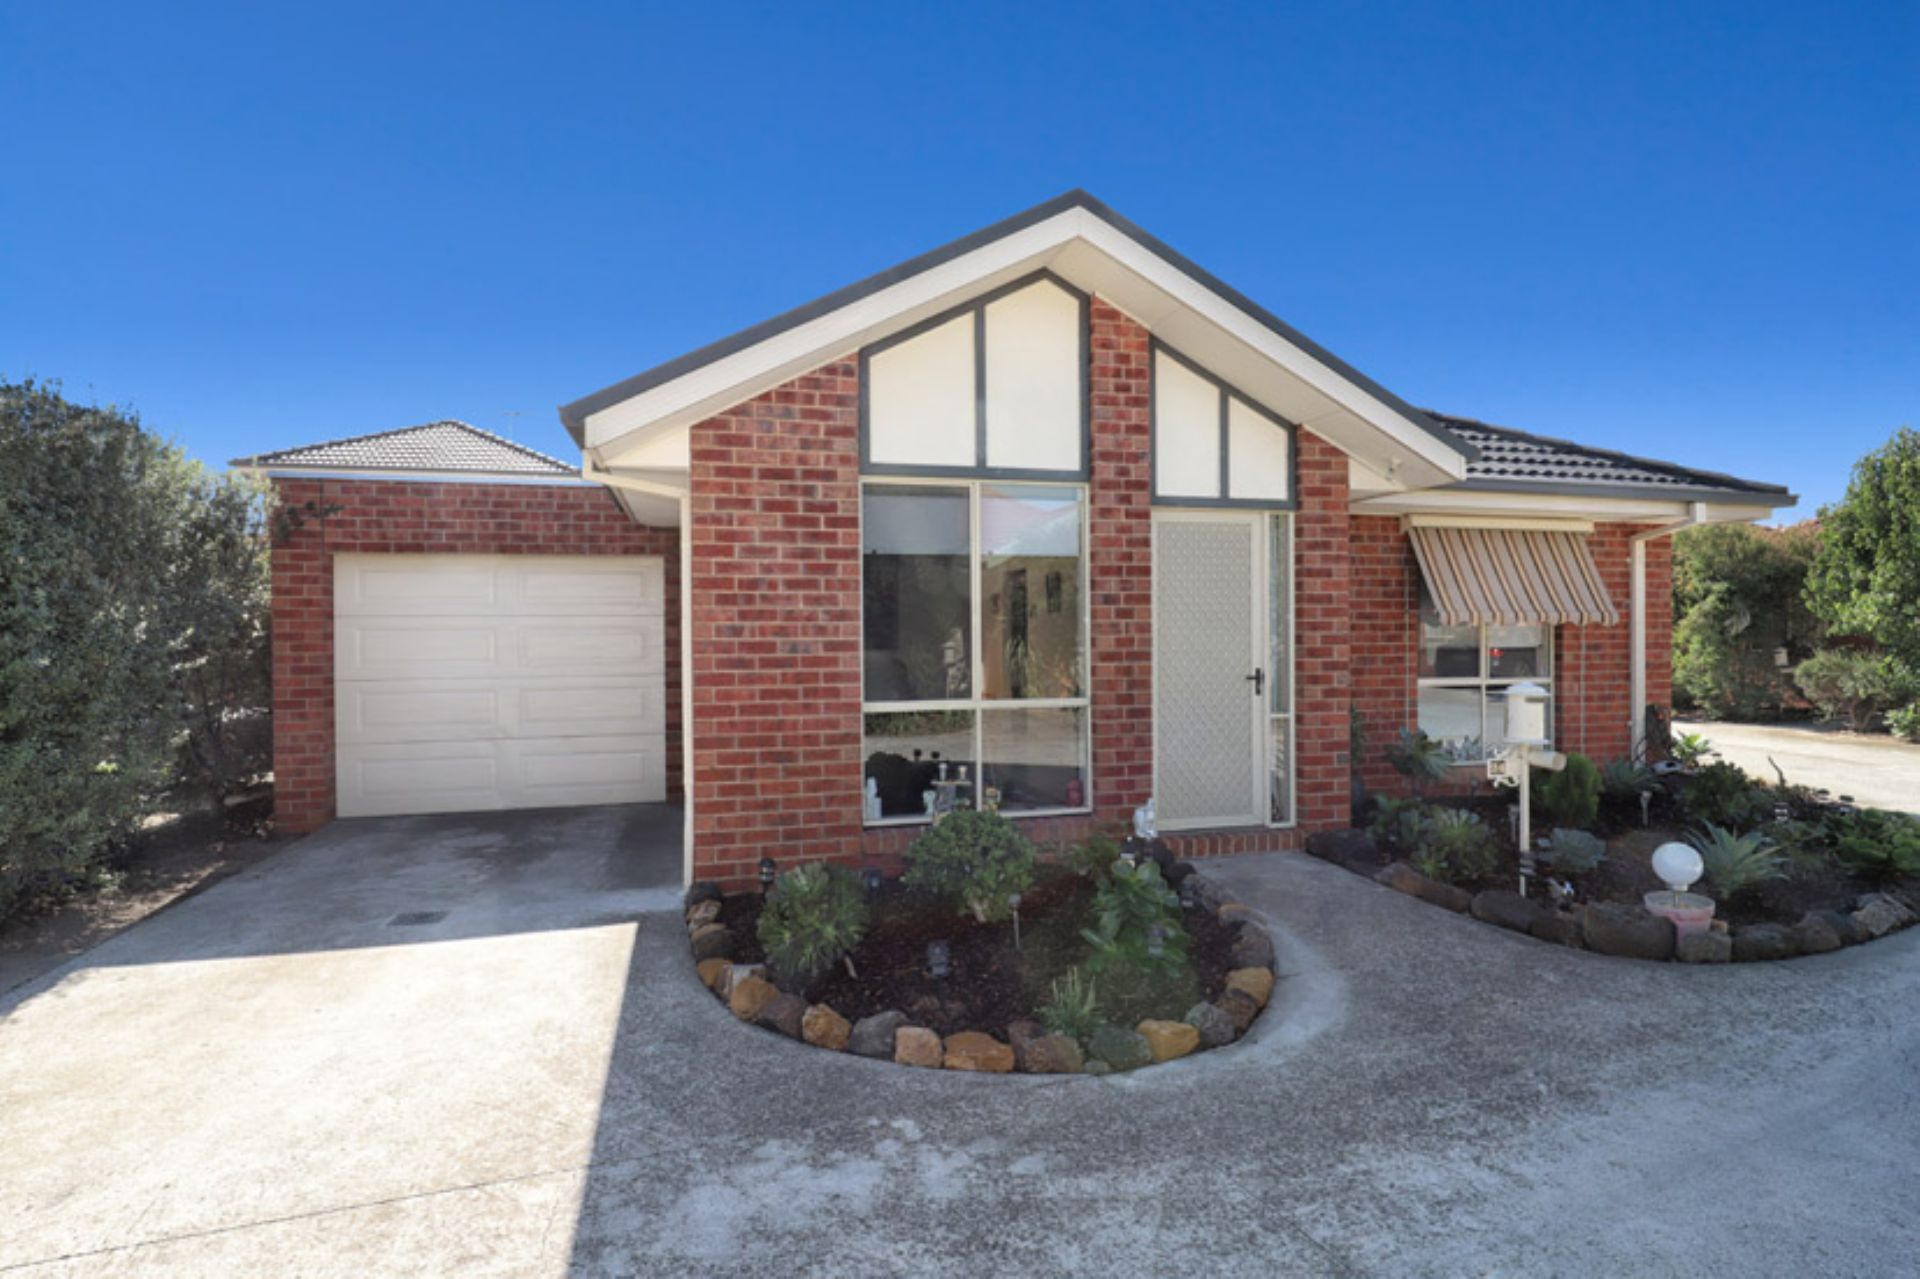 4/24 Tyson Way, SYDENHAM, VIC, 3037 - Image